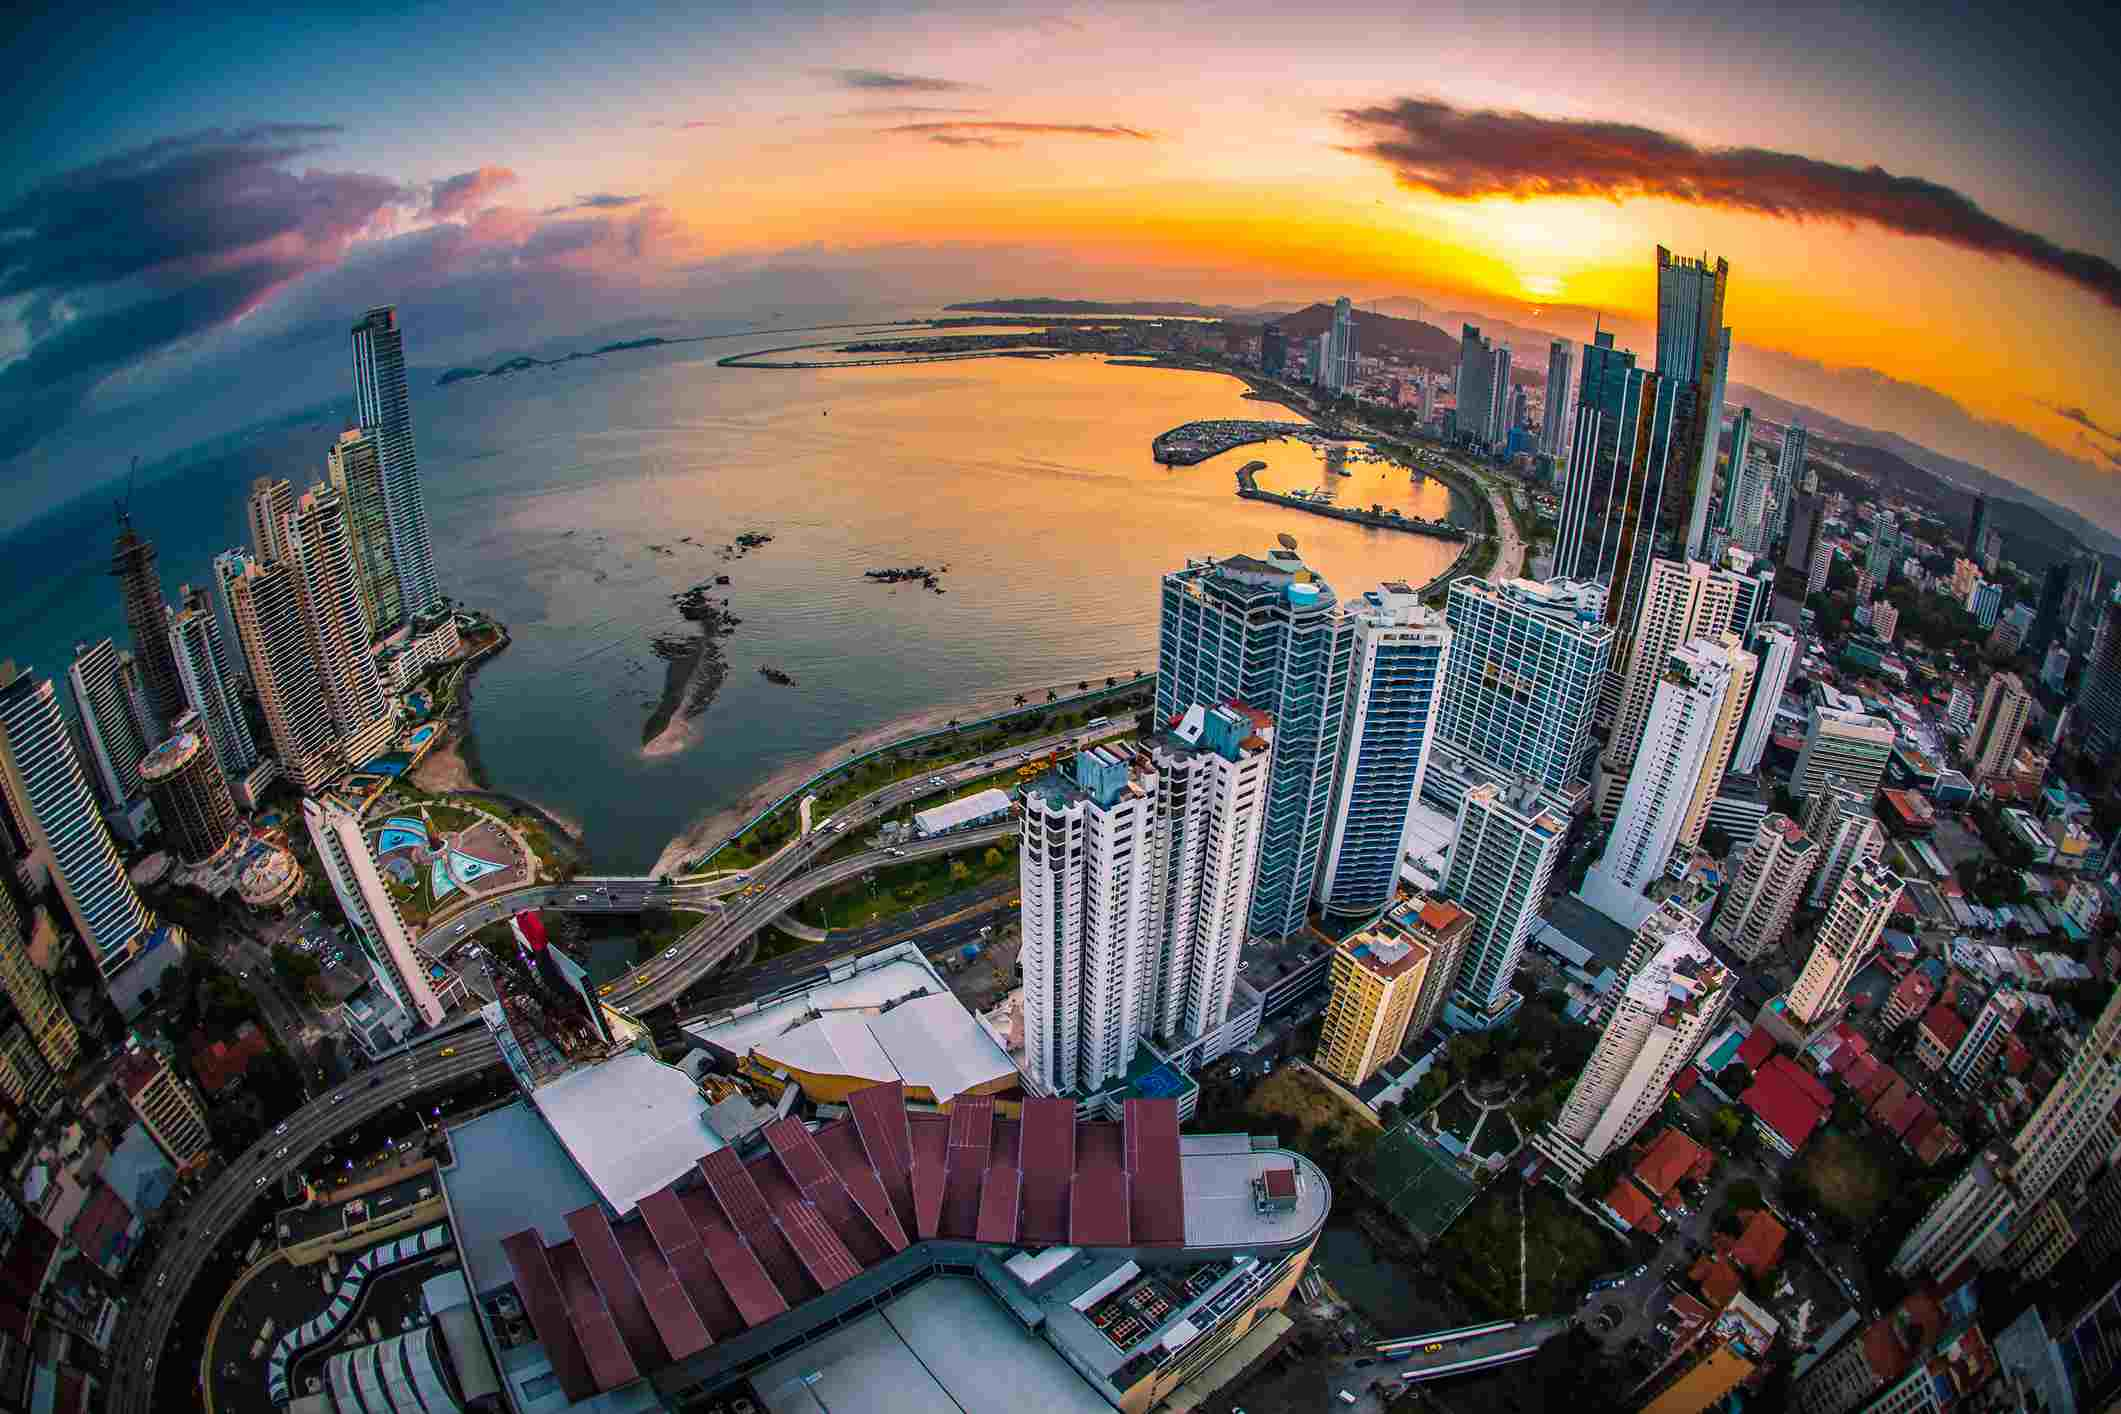 Aerial view over Panama City